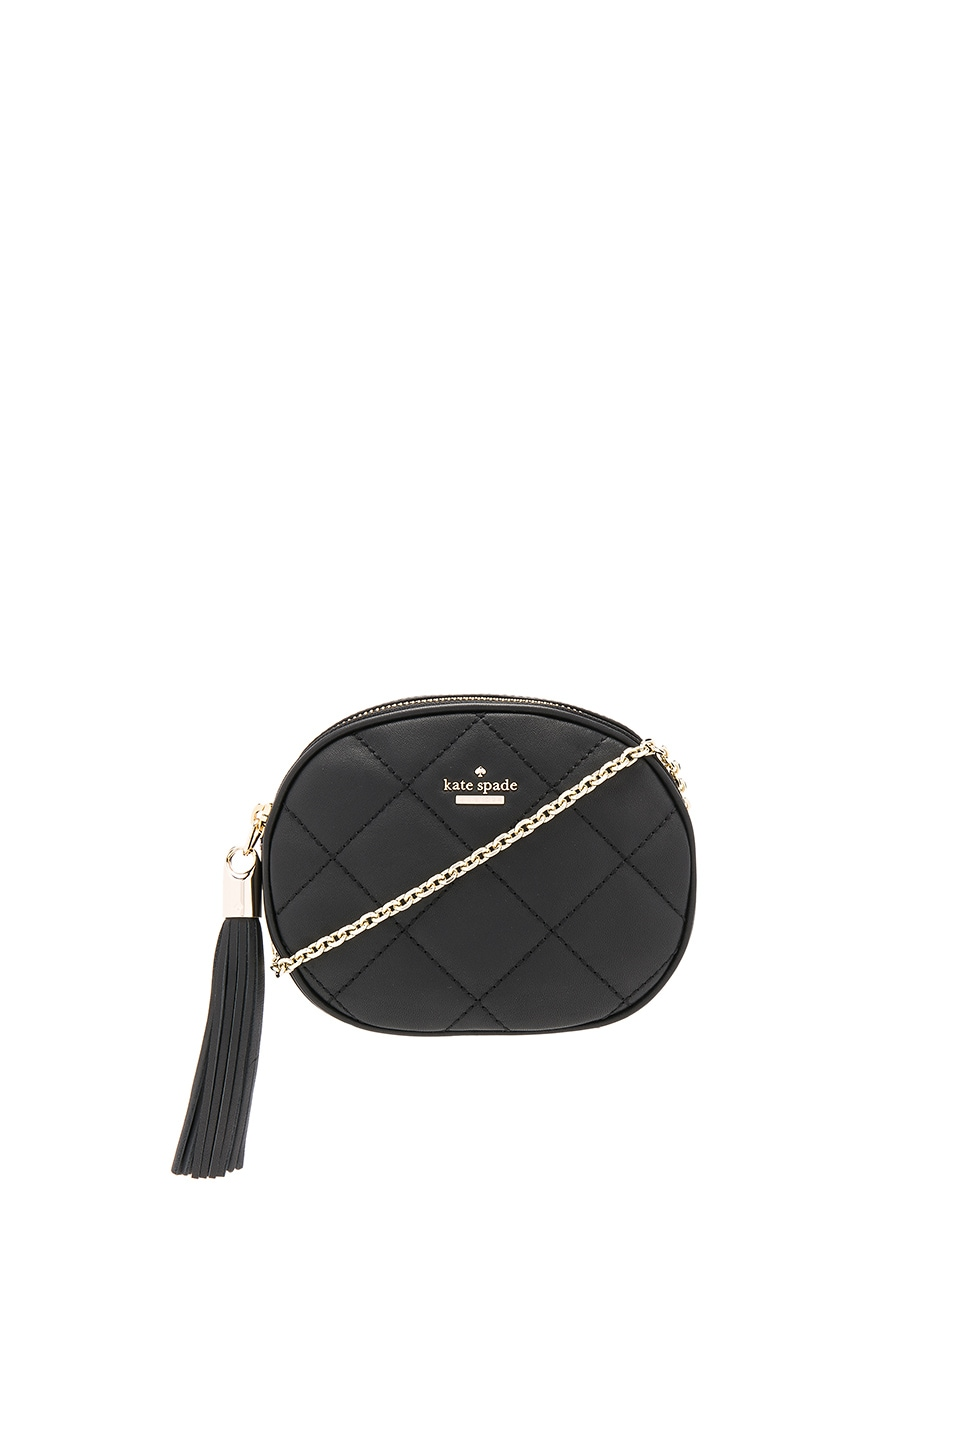 kate spade new york Tinley Crossbody in Black & Smokey Rose